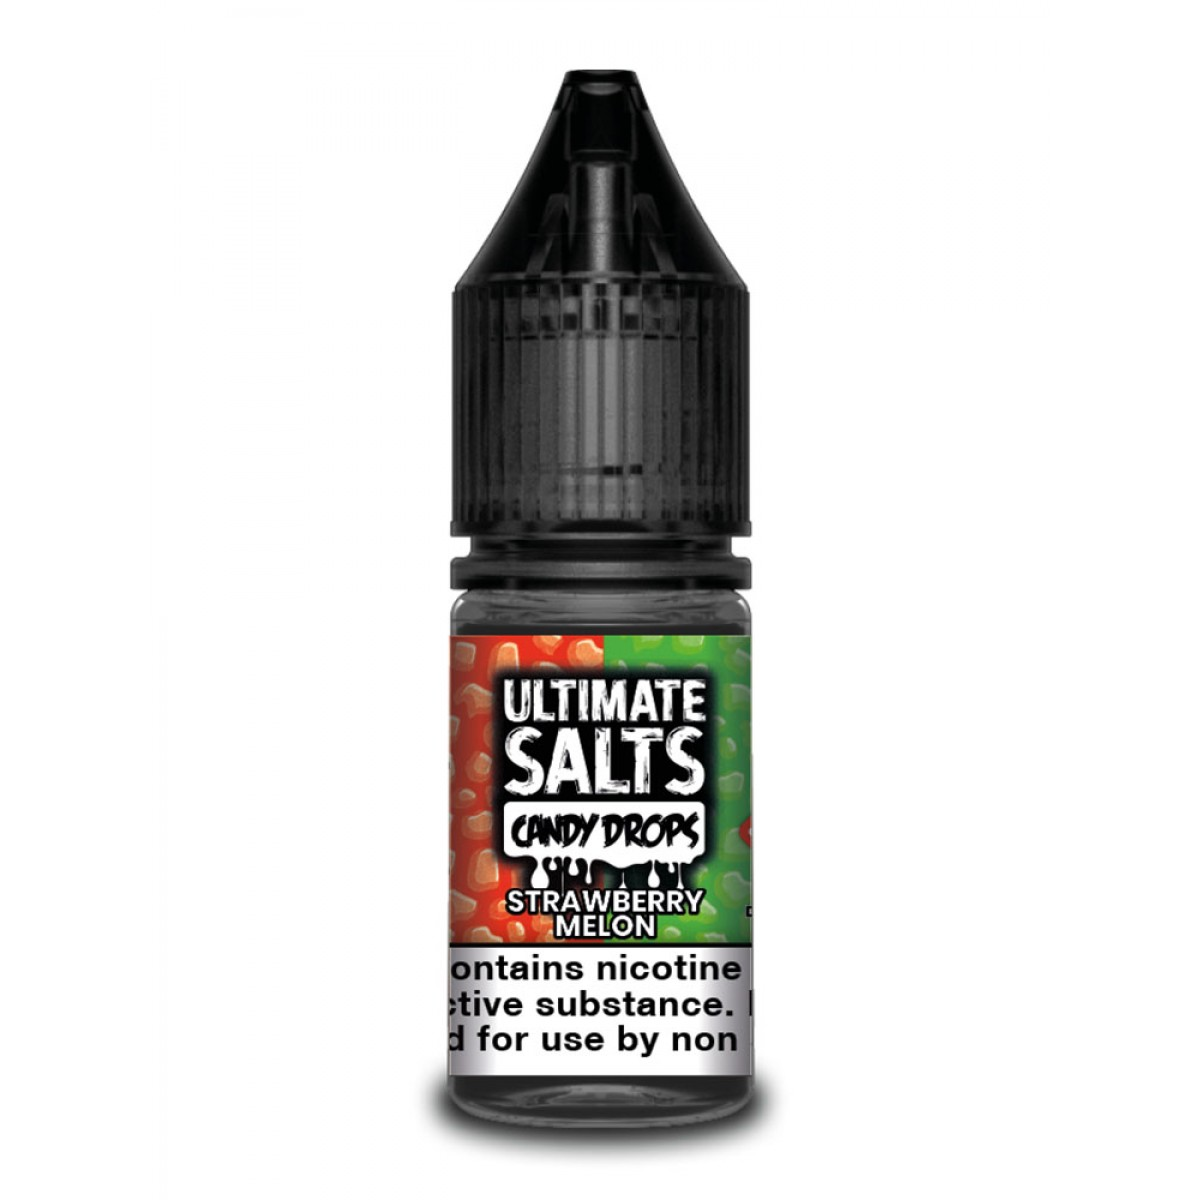 STRAWBERRY MELON BY ULTIMATE SALTS CANDY DROPS